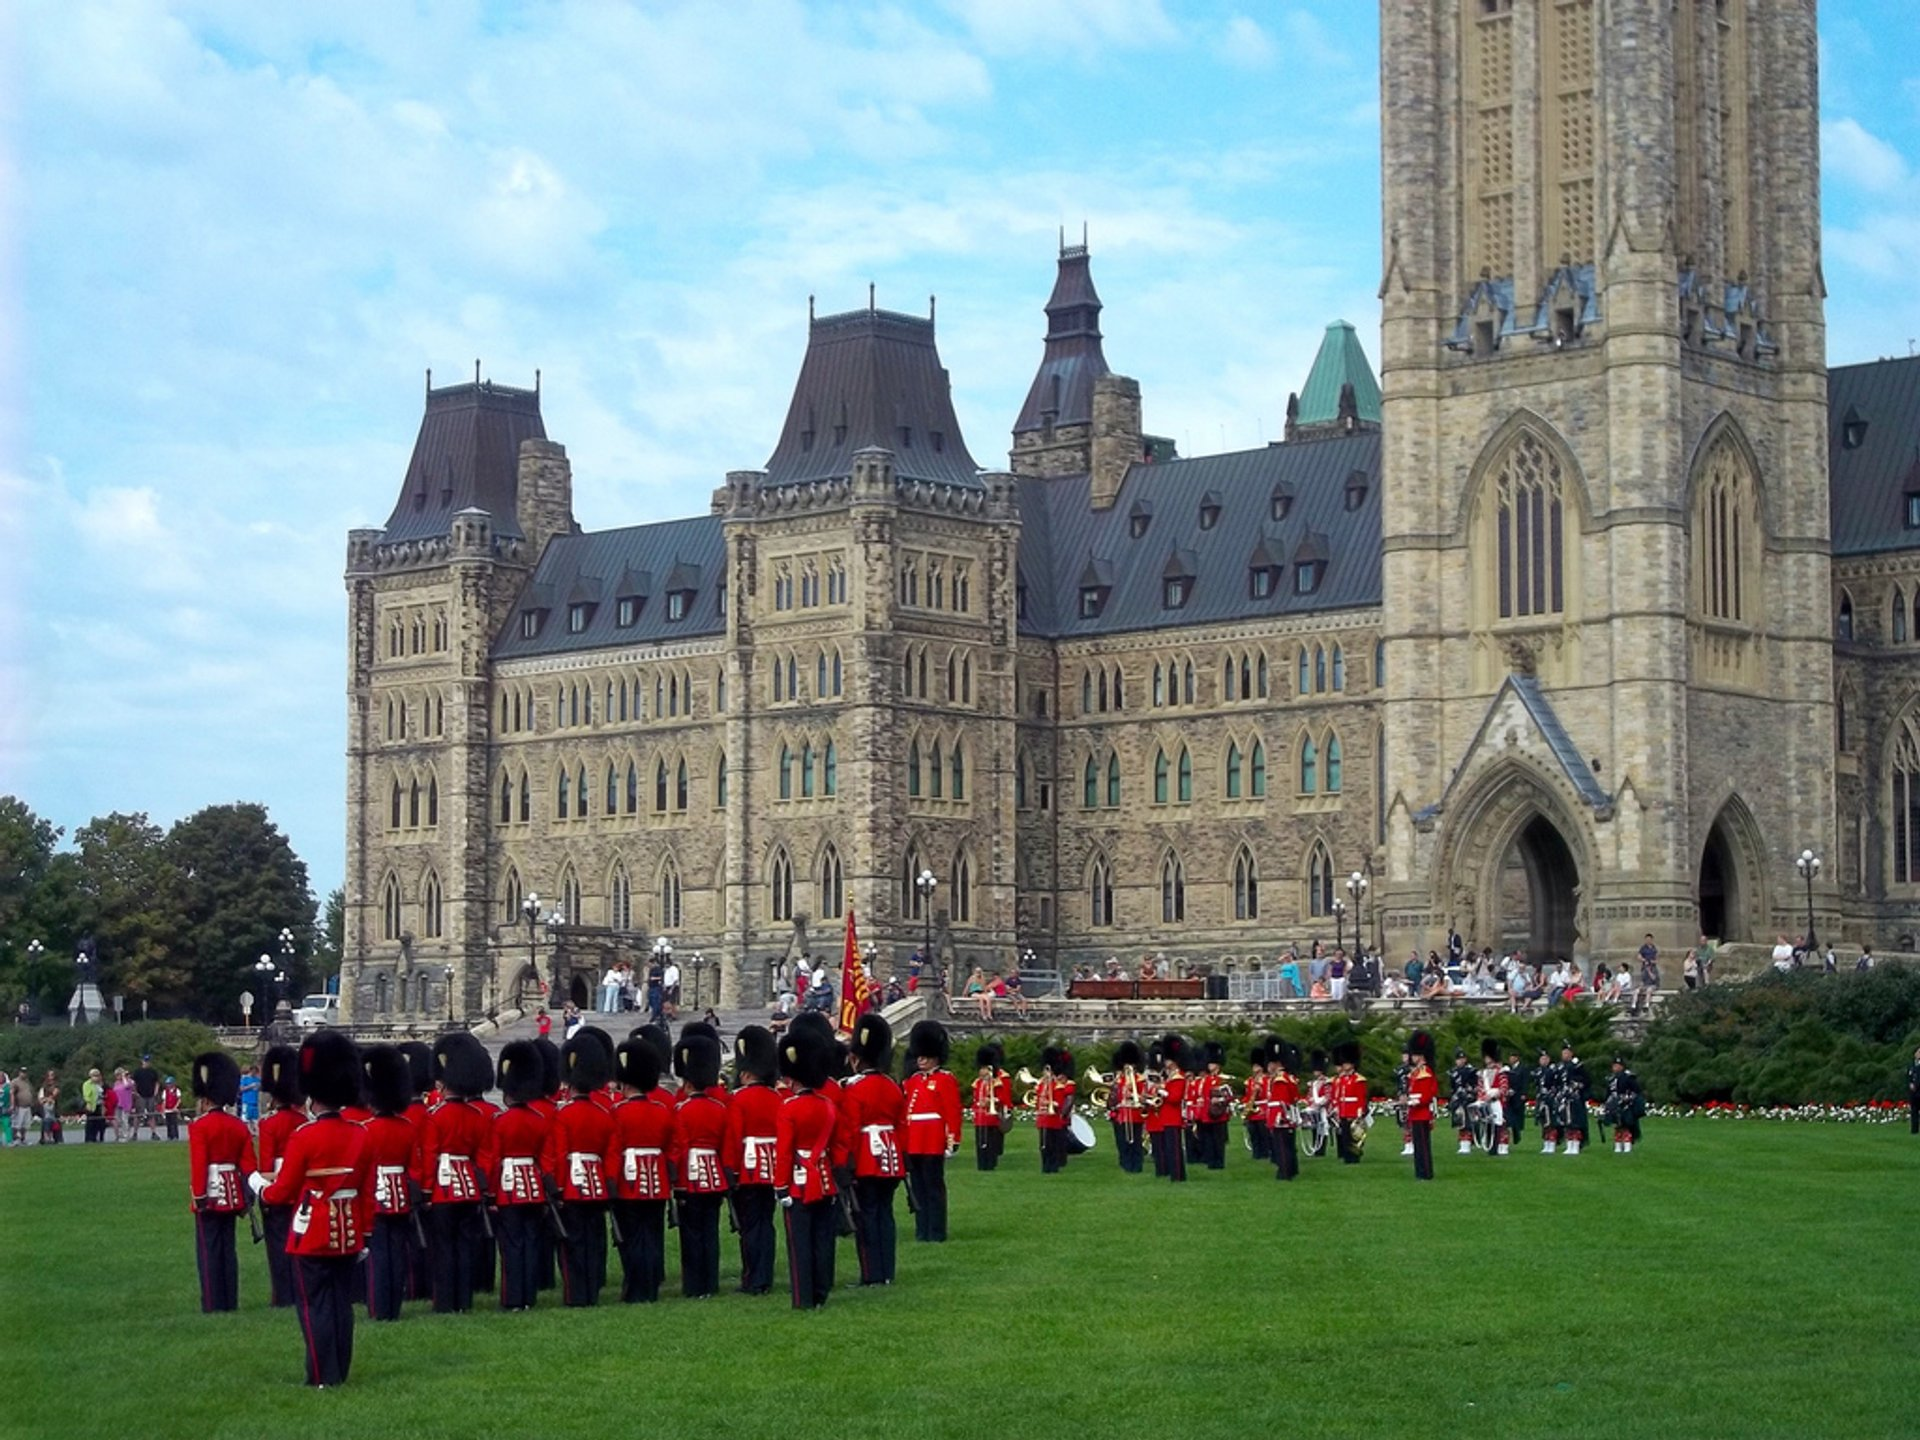 Changing of the Guard Ceremony in Ottawa - Best Season 2020